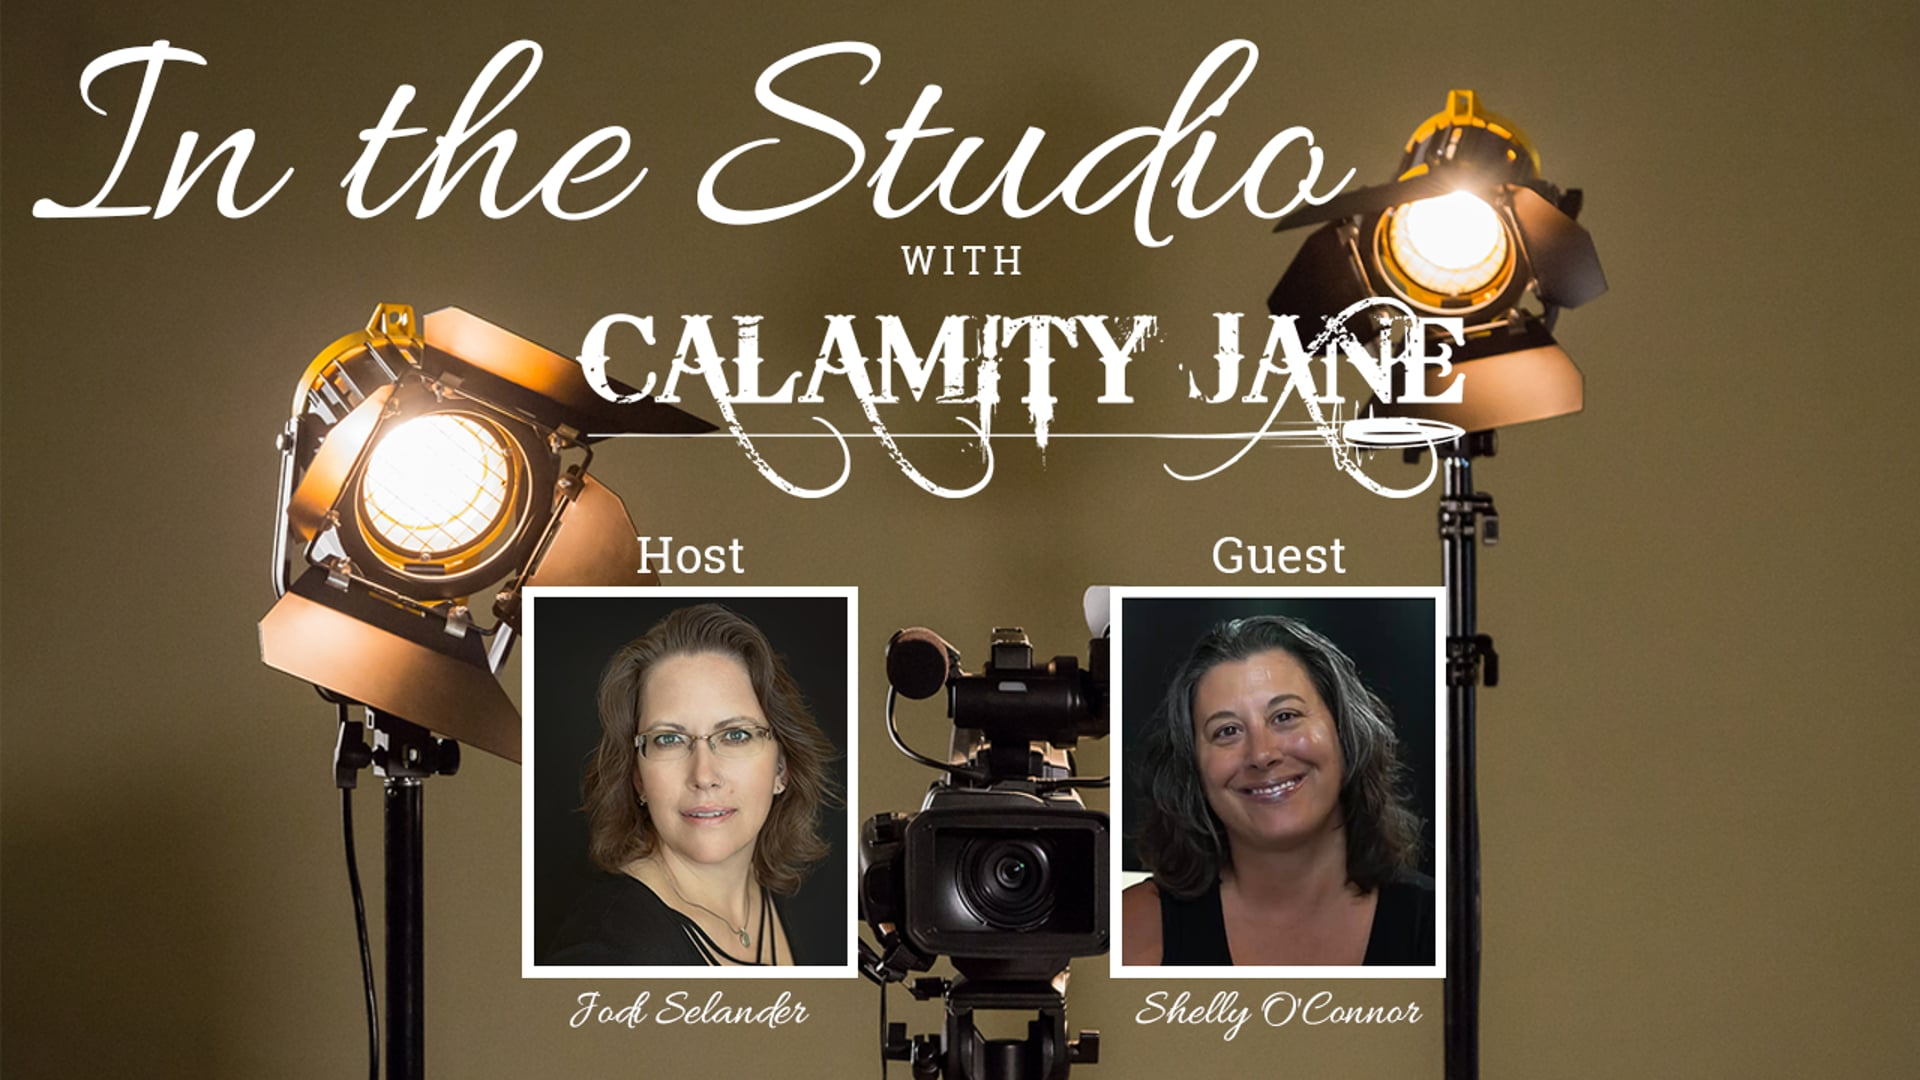 S1:E20 - Shelly O'Connor is In The Studio with Calamity Jane.